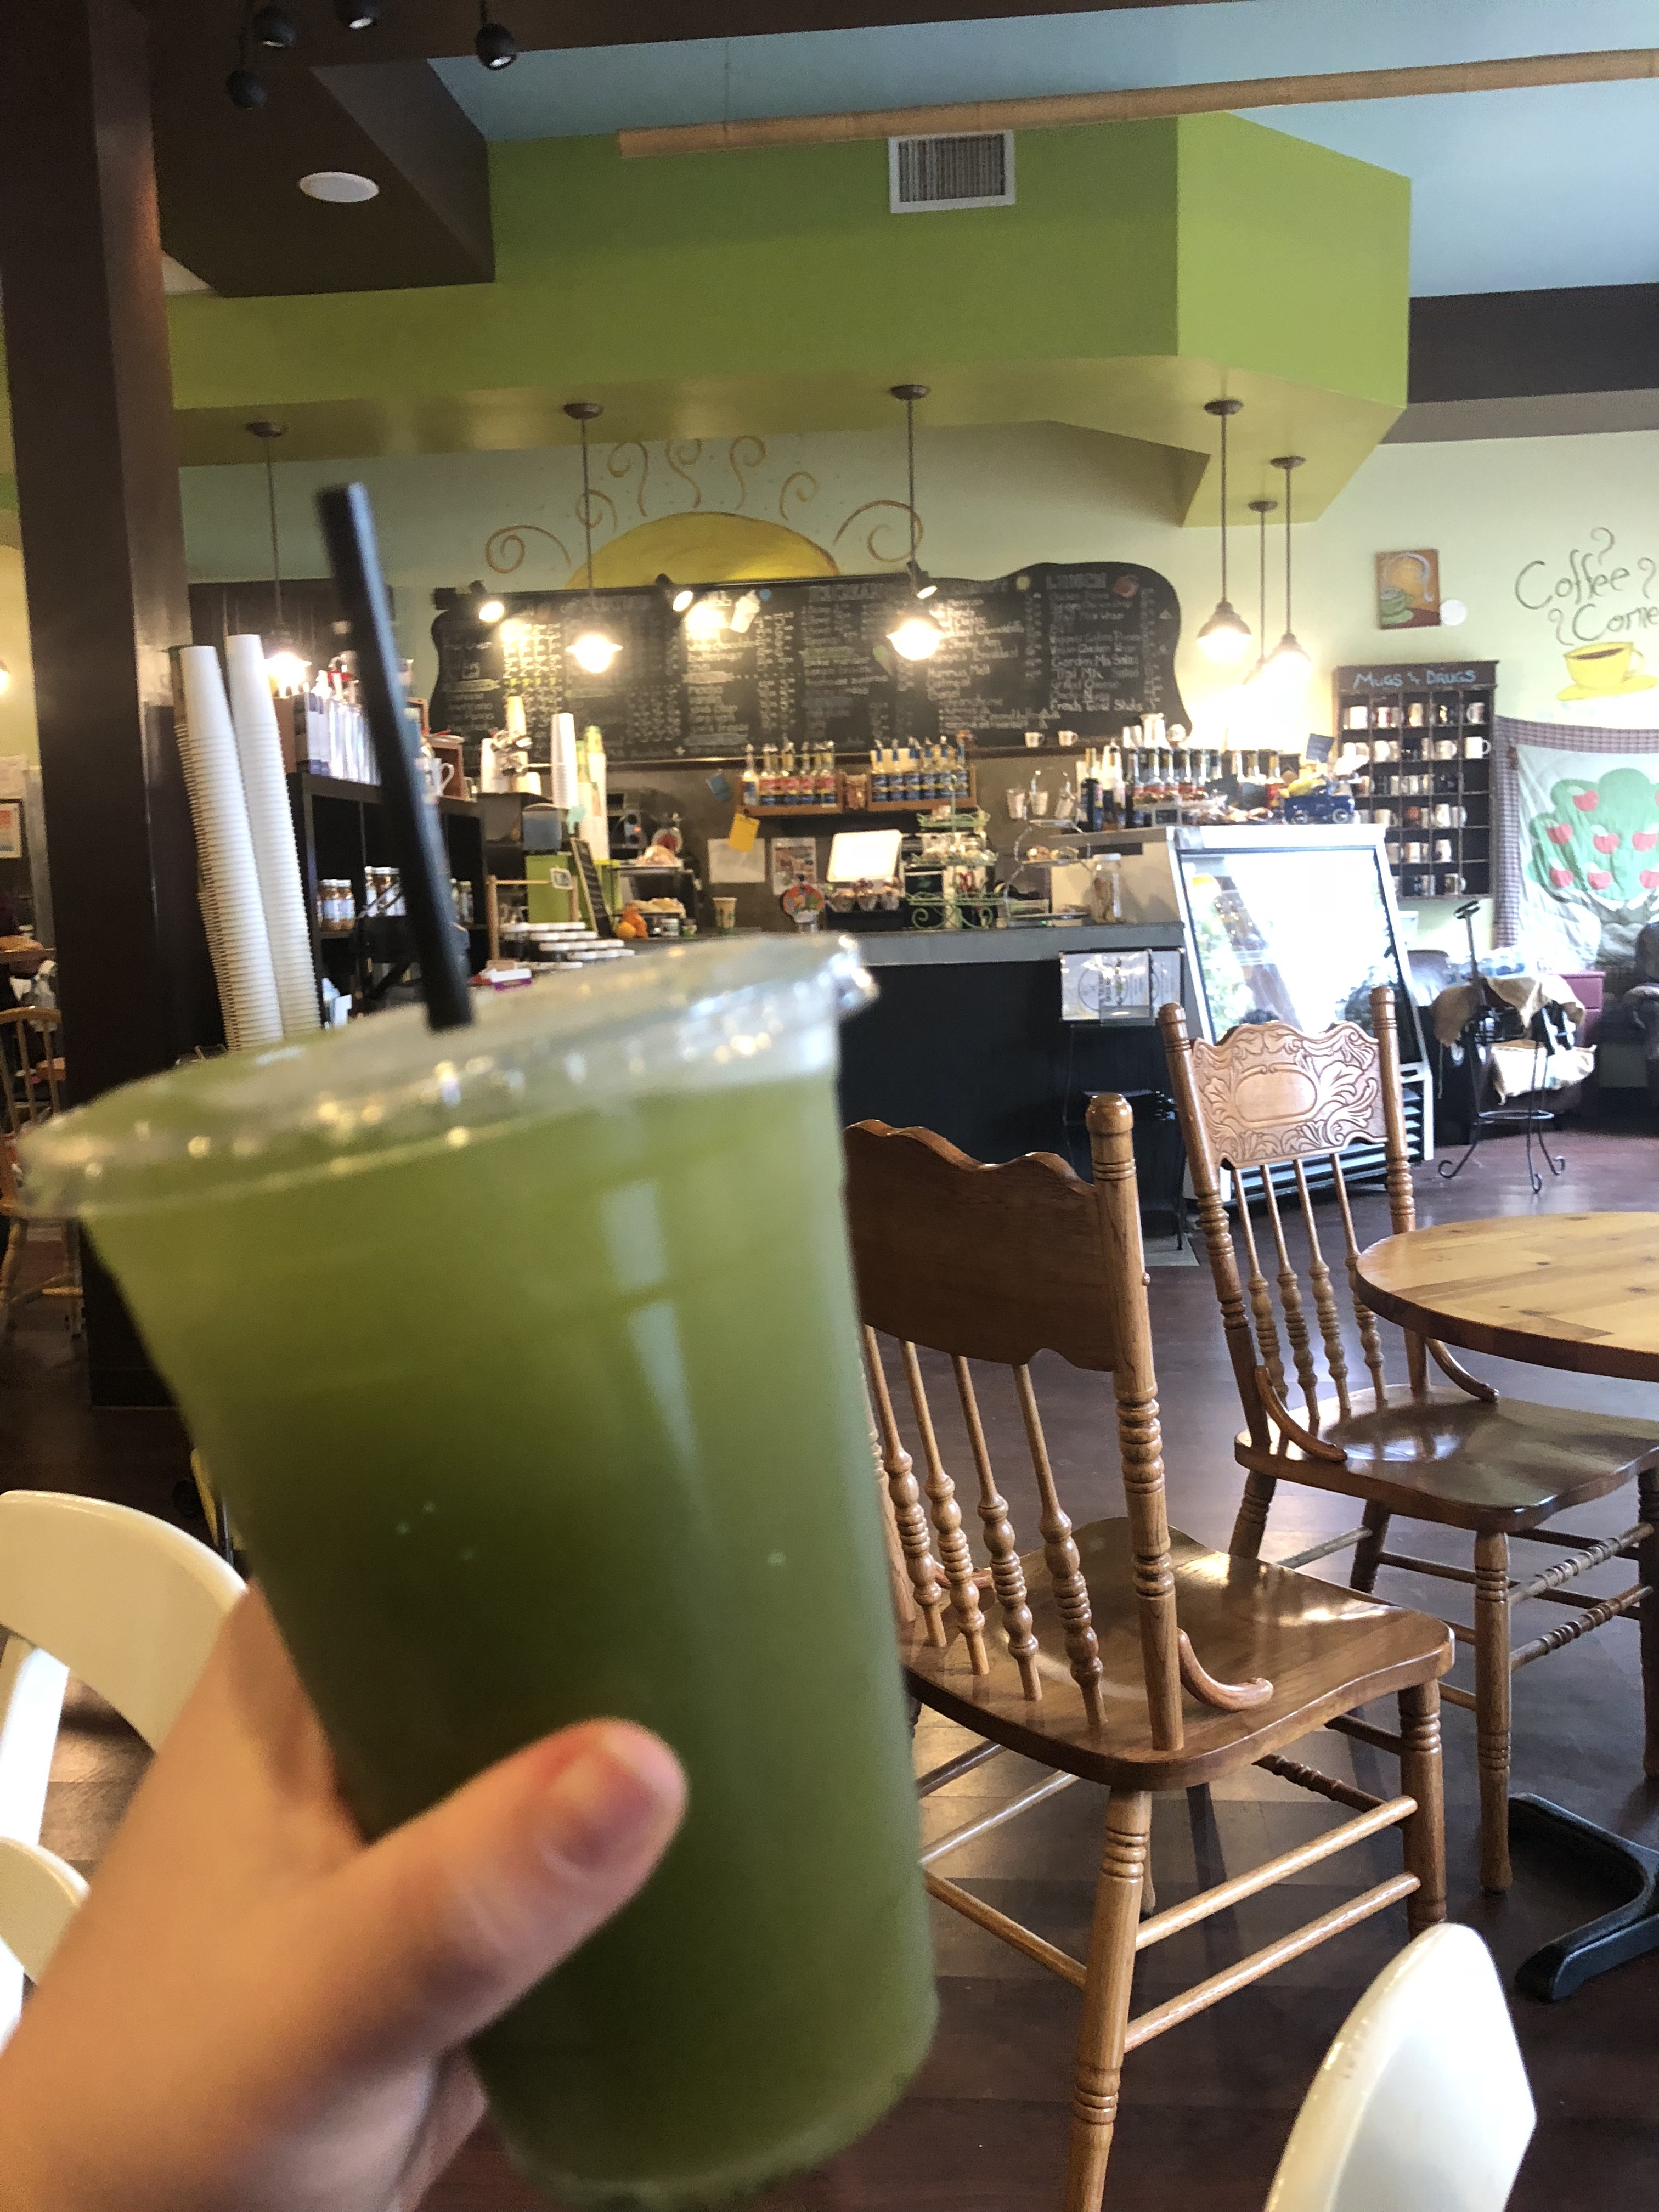 Working from a Coffee Shop: The Treehouse Coffee Shop in Audubon